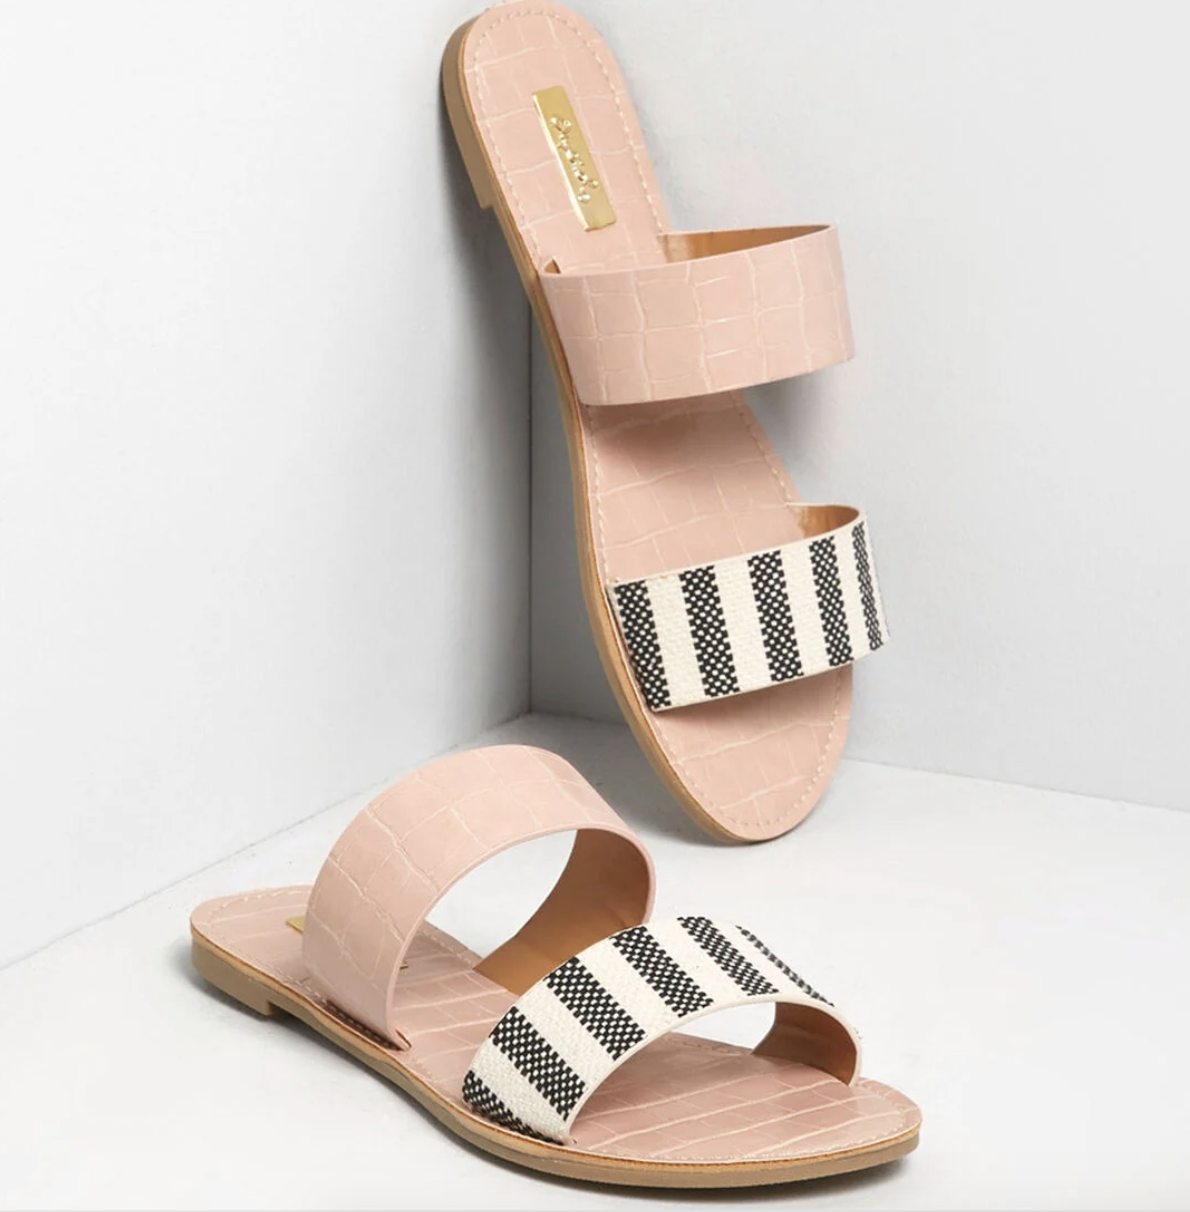 A pair of blush pink crocodile print slide-on sandals with two straps, one to match the rest of the shoe and the top one in black and white stripes